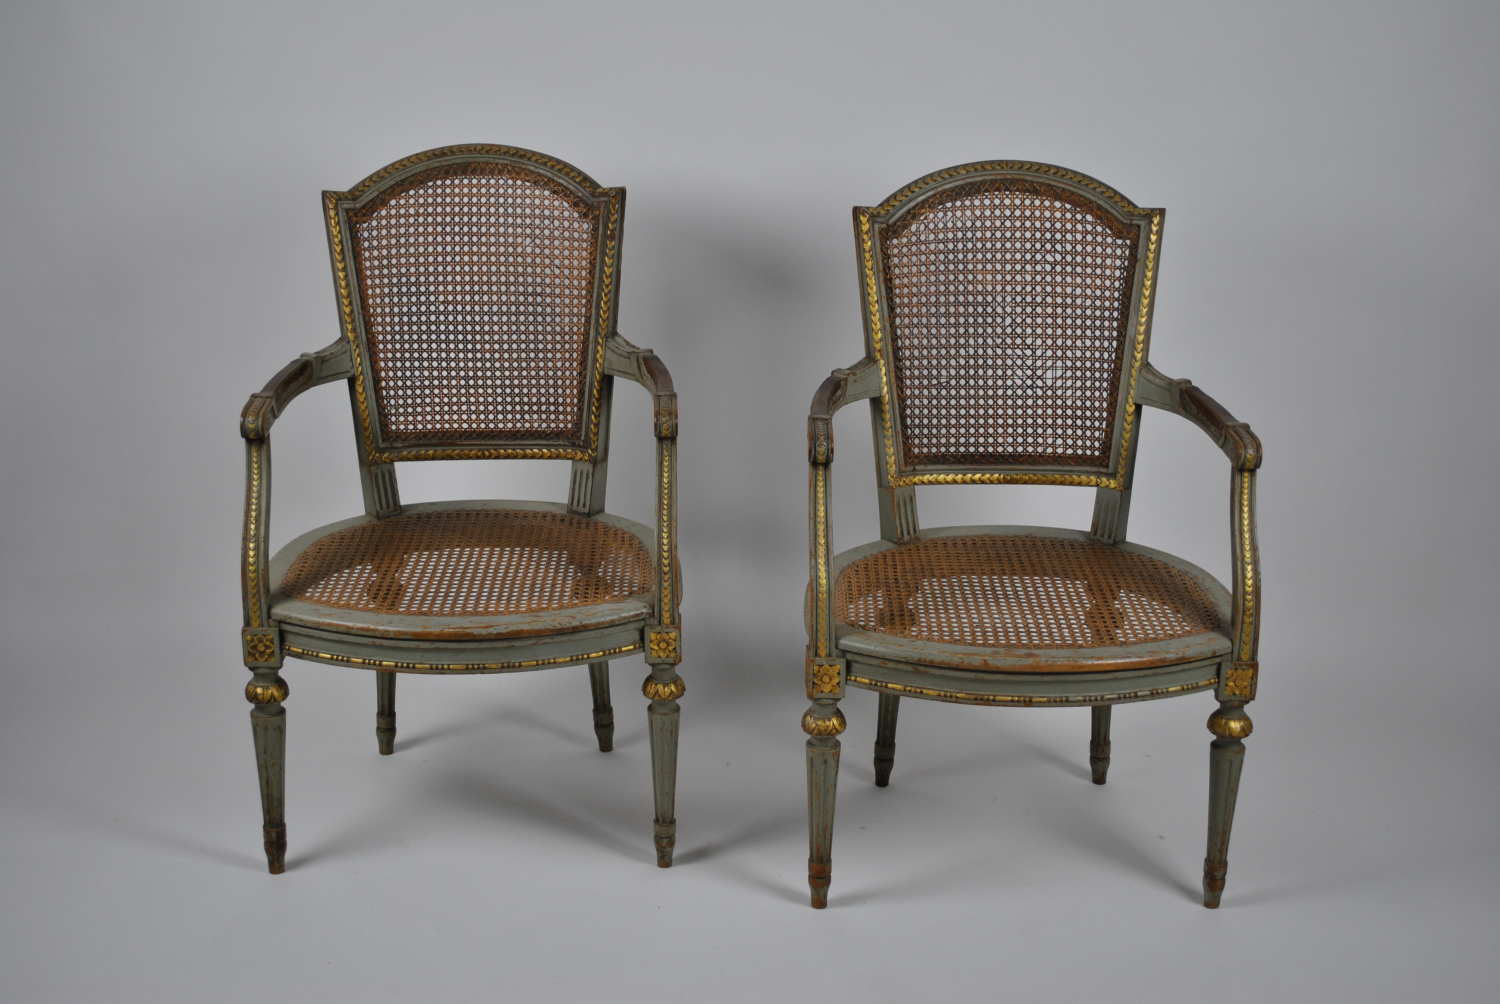 19th Century Cane Chairs